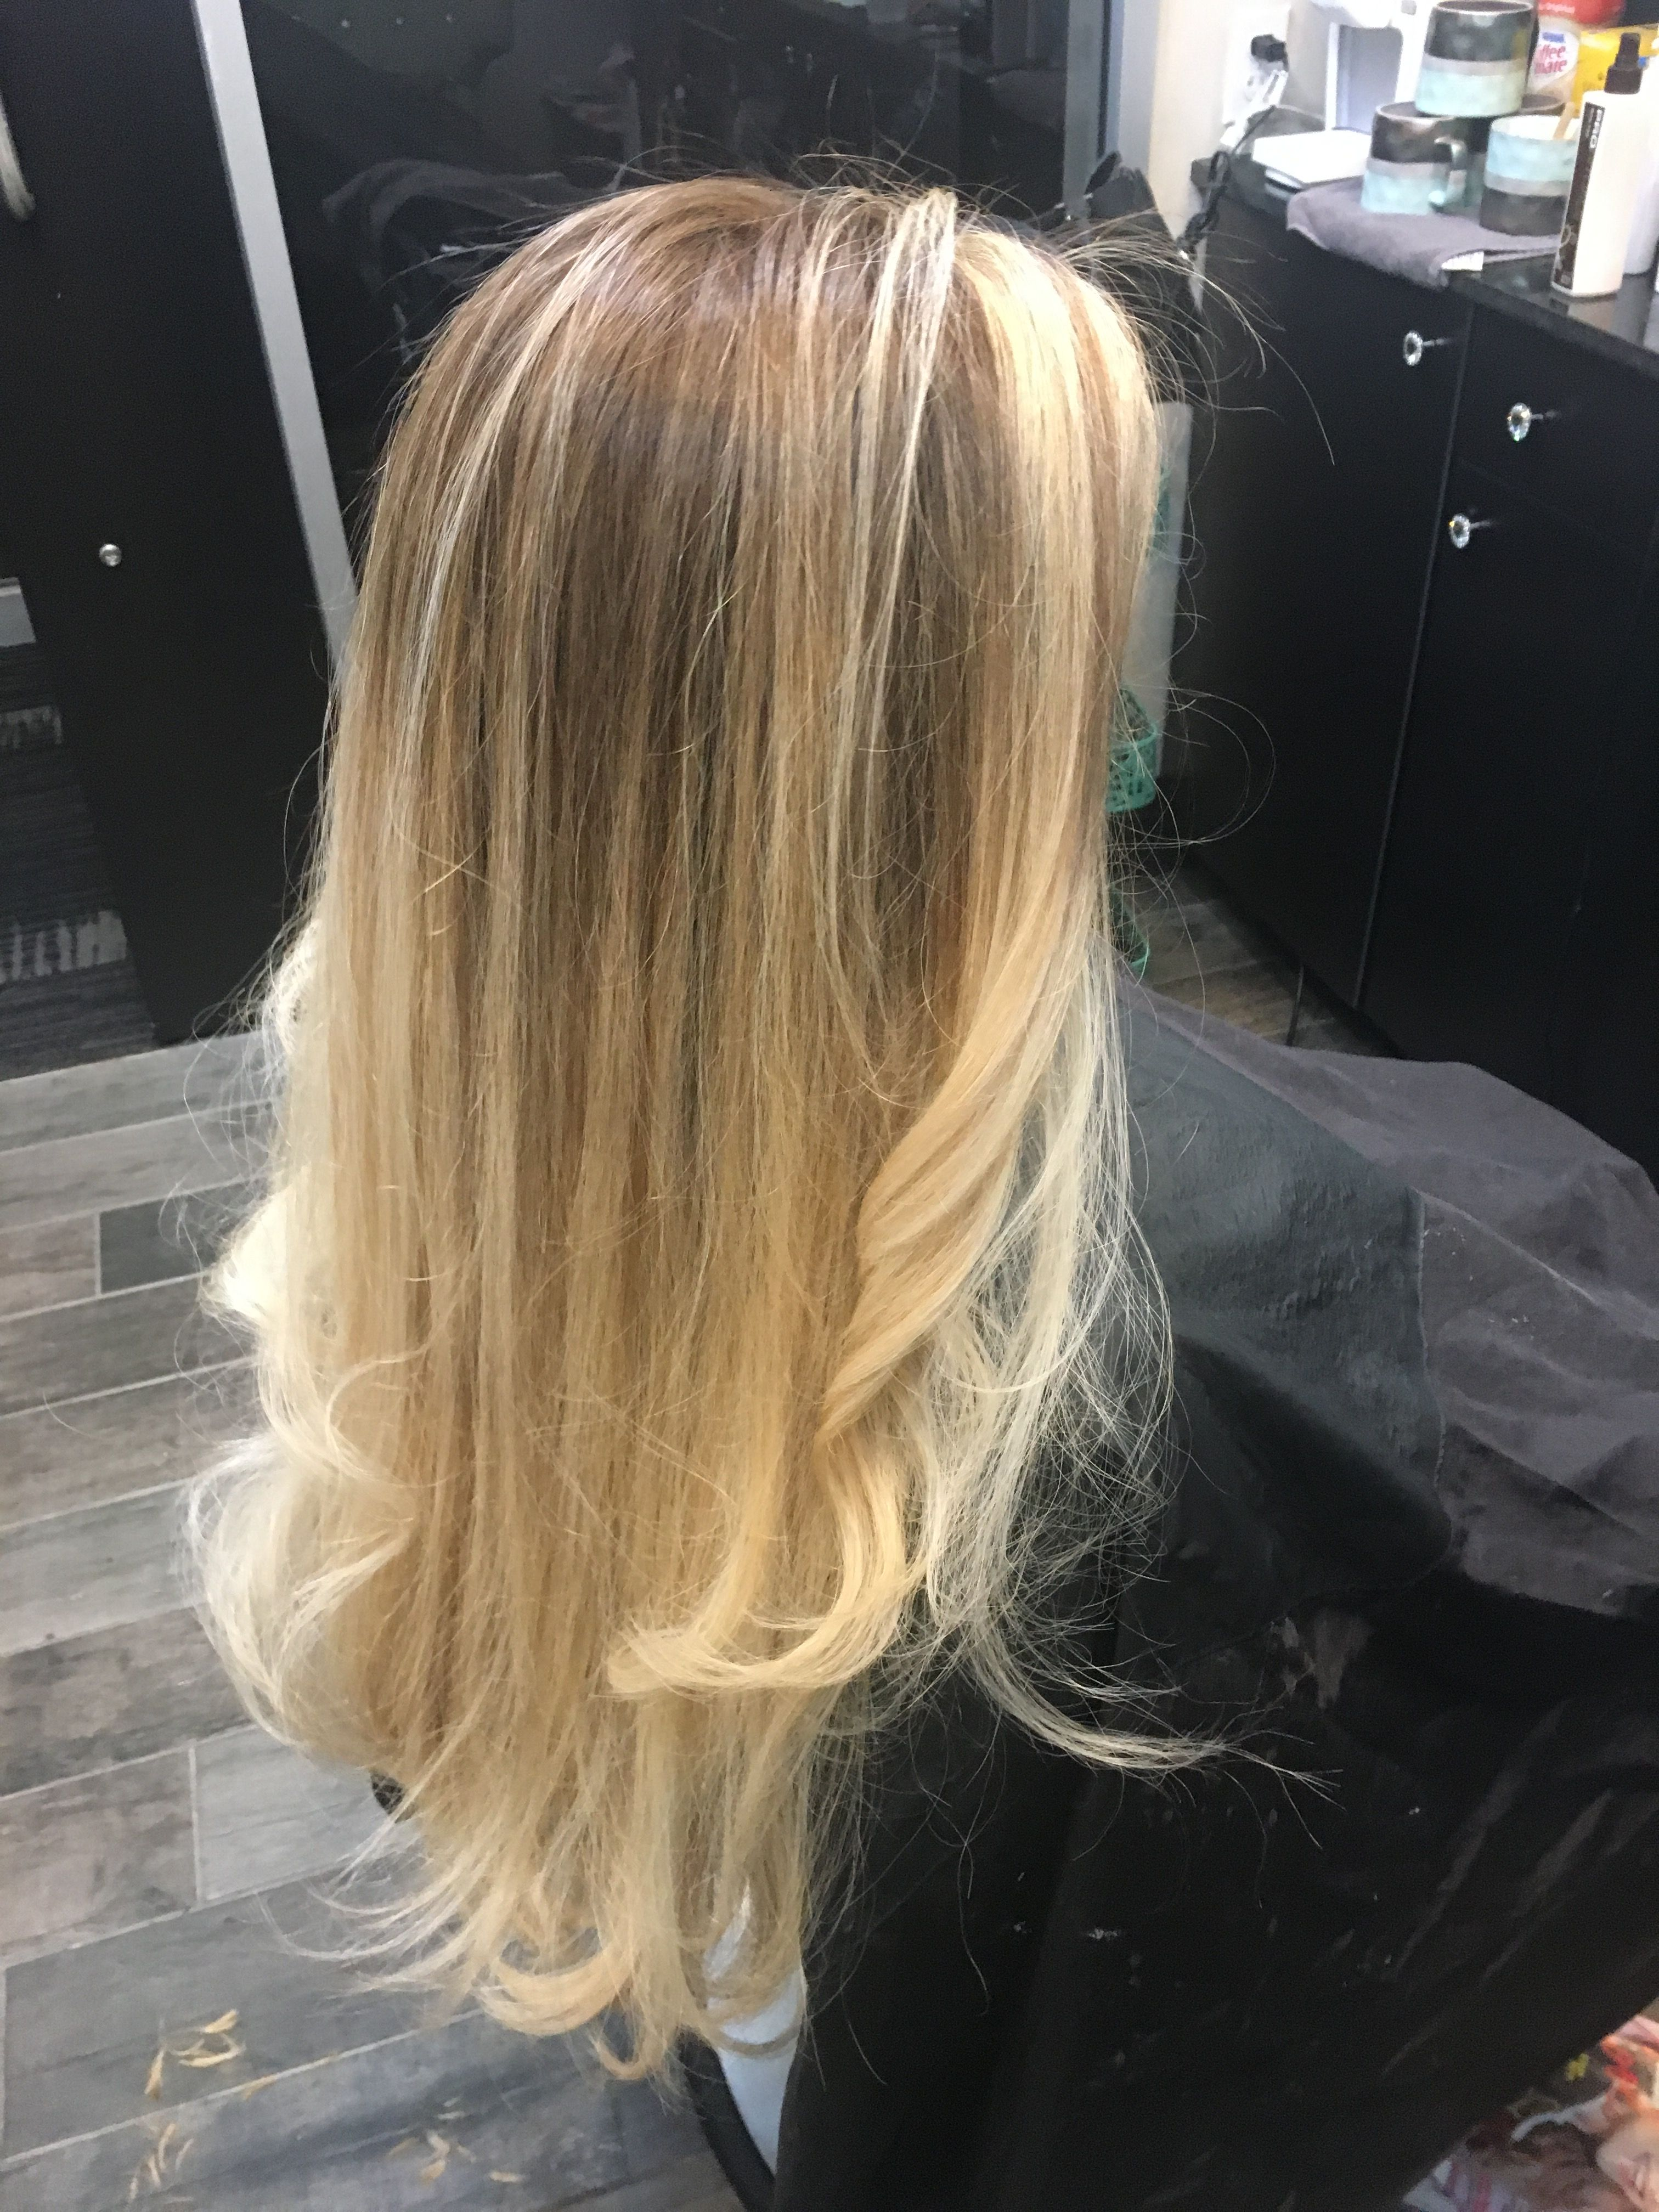 Super Long Thick Hair Balayage With Pale Blonde Ends And Dark Blond Roots Roots Look With Face Framing Highlights Dark Balayage Hair Balayage